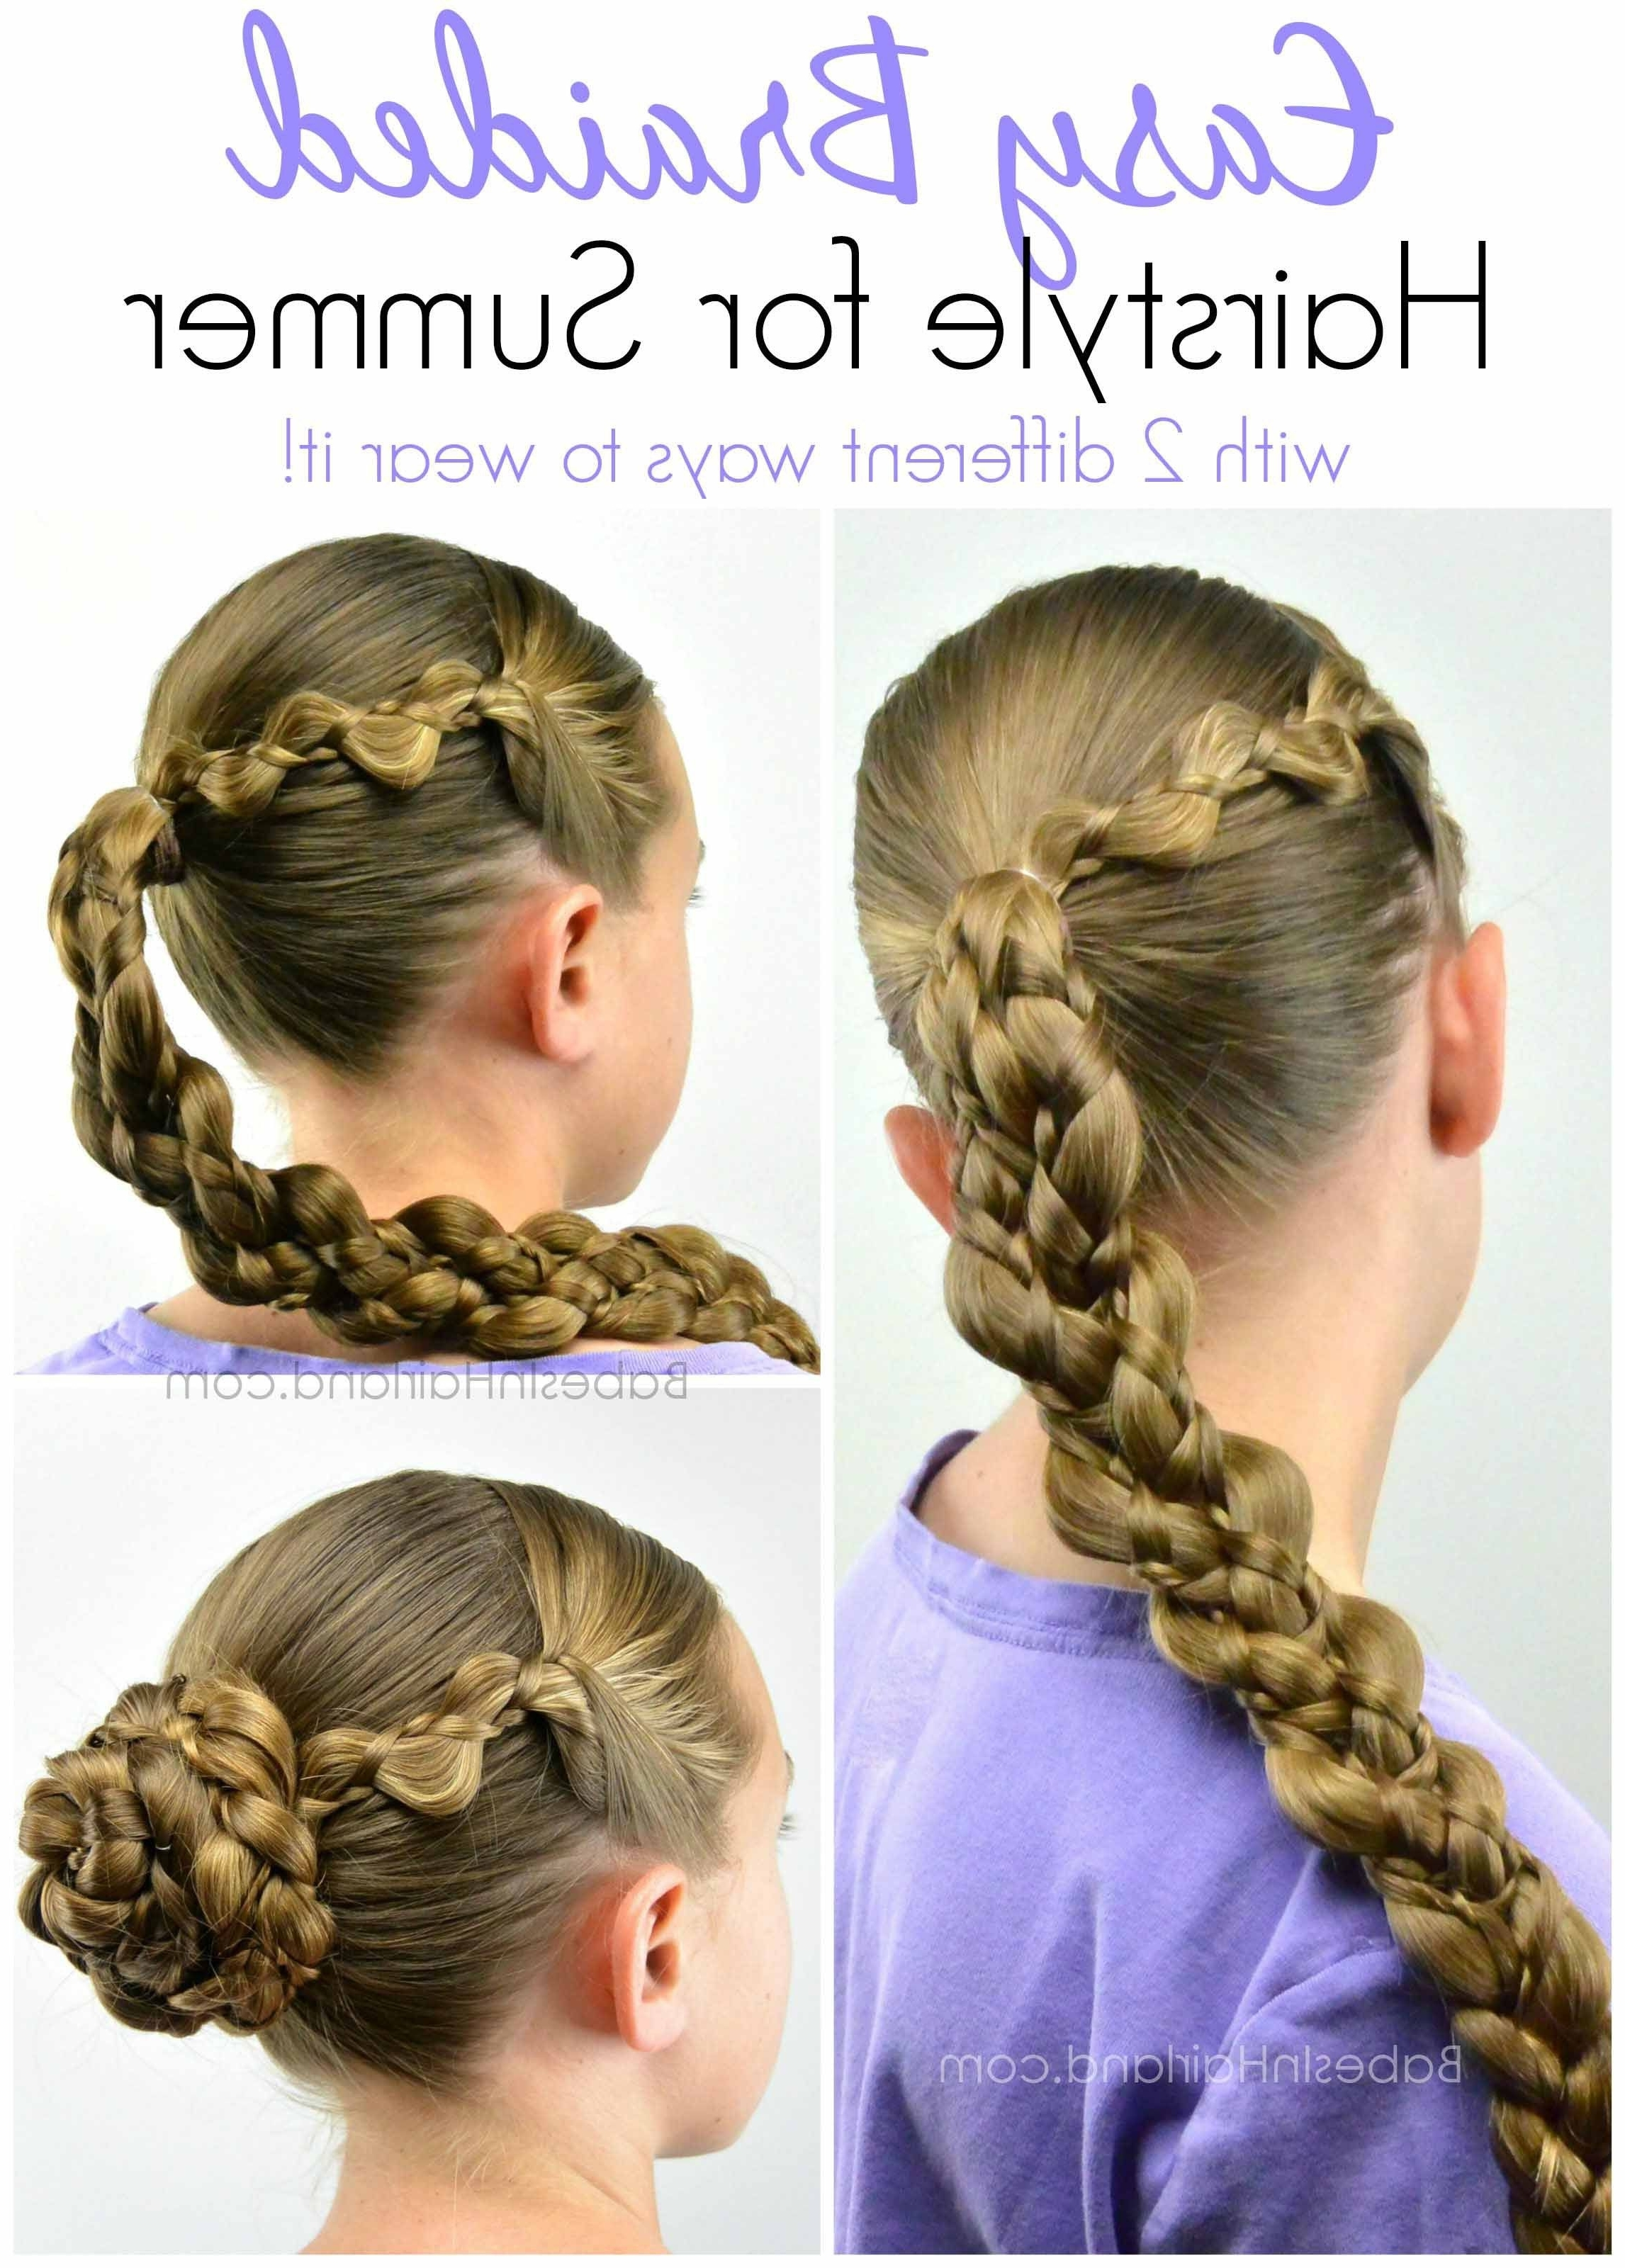 Favorite Braided Gymnastics Hairstyles Intended For Easy Braided Hairstyle For Summer (View 5 of 15)